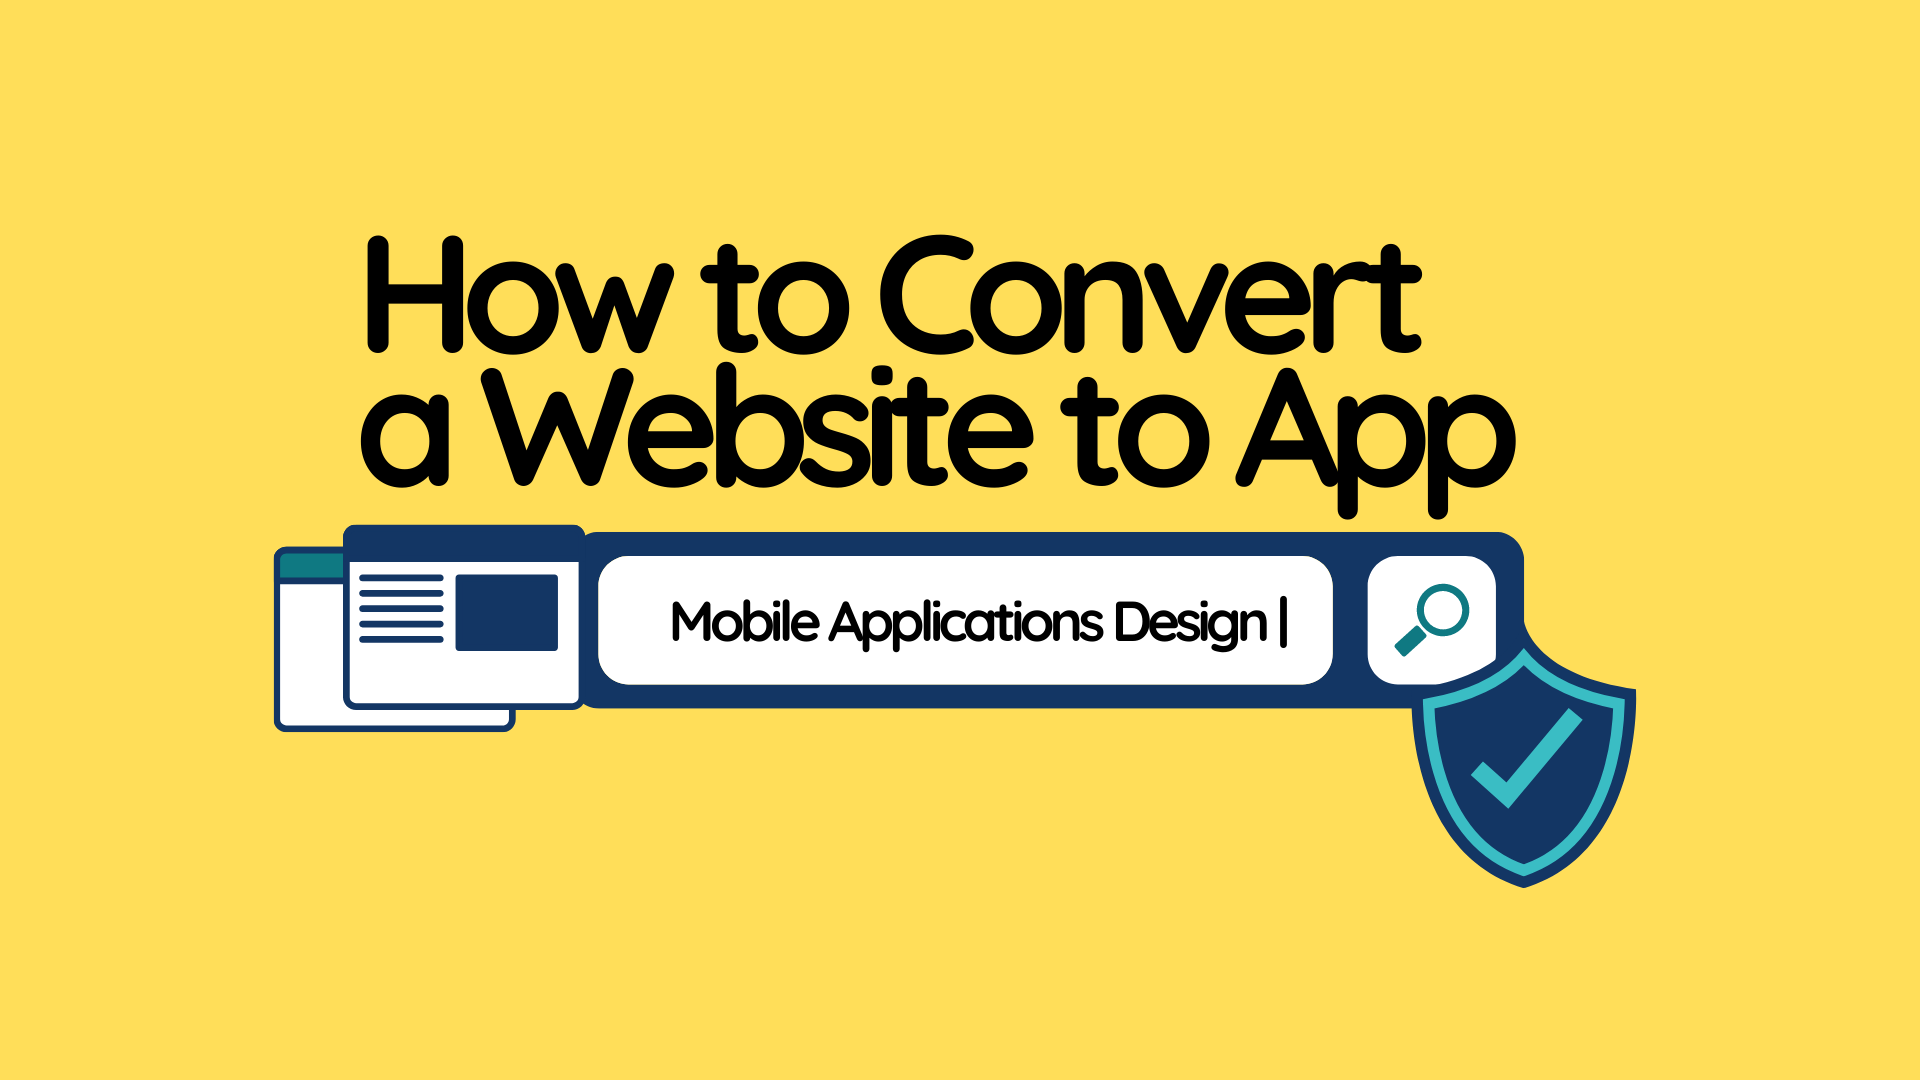 How to Convert a Website to App